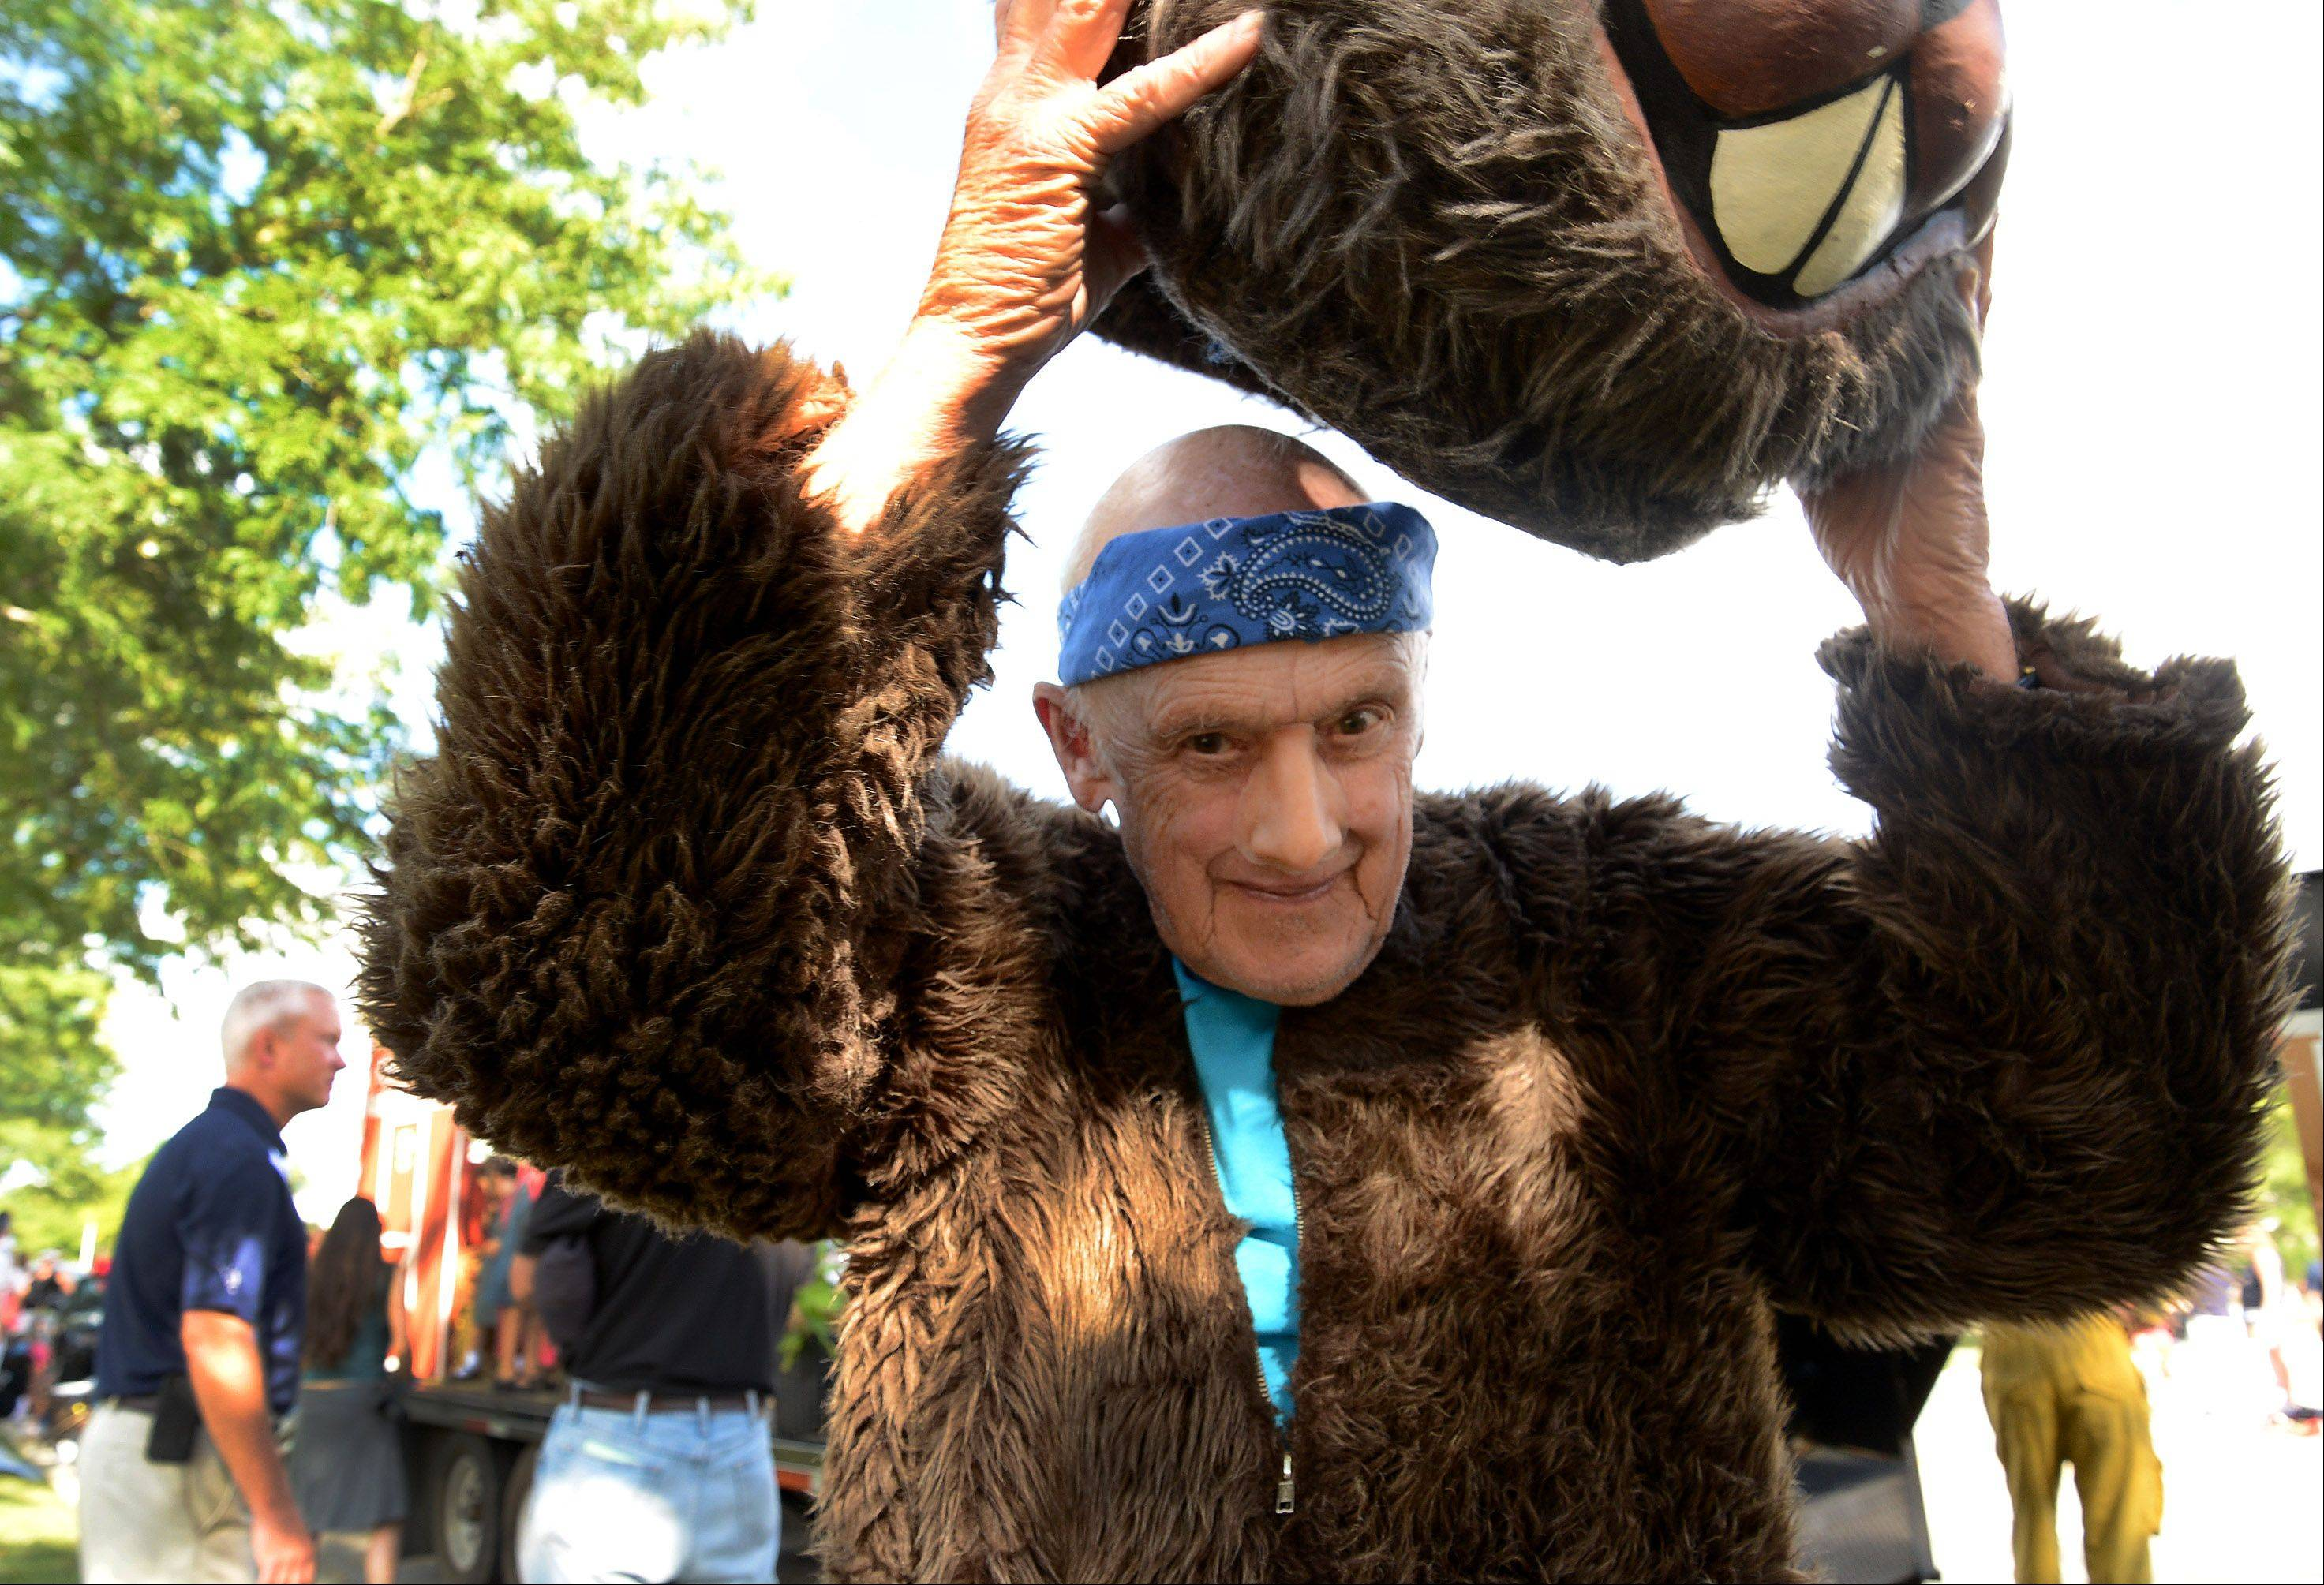 Pete Gigous of the Spring Valley Nature Center puts on his woodchuck head before climbing aboard their float before the annual Schaumburg Septemberfest parade.